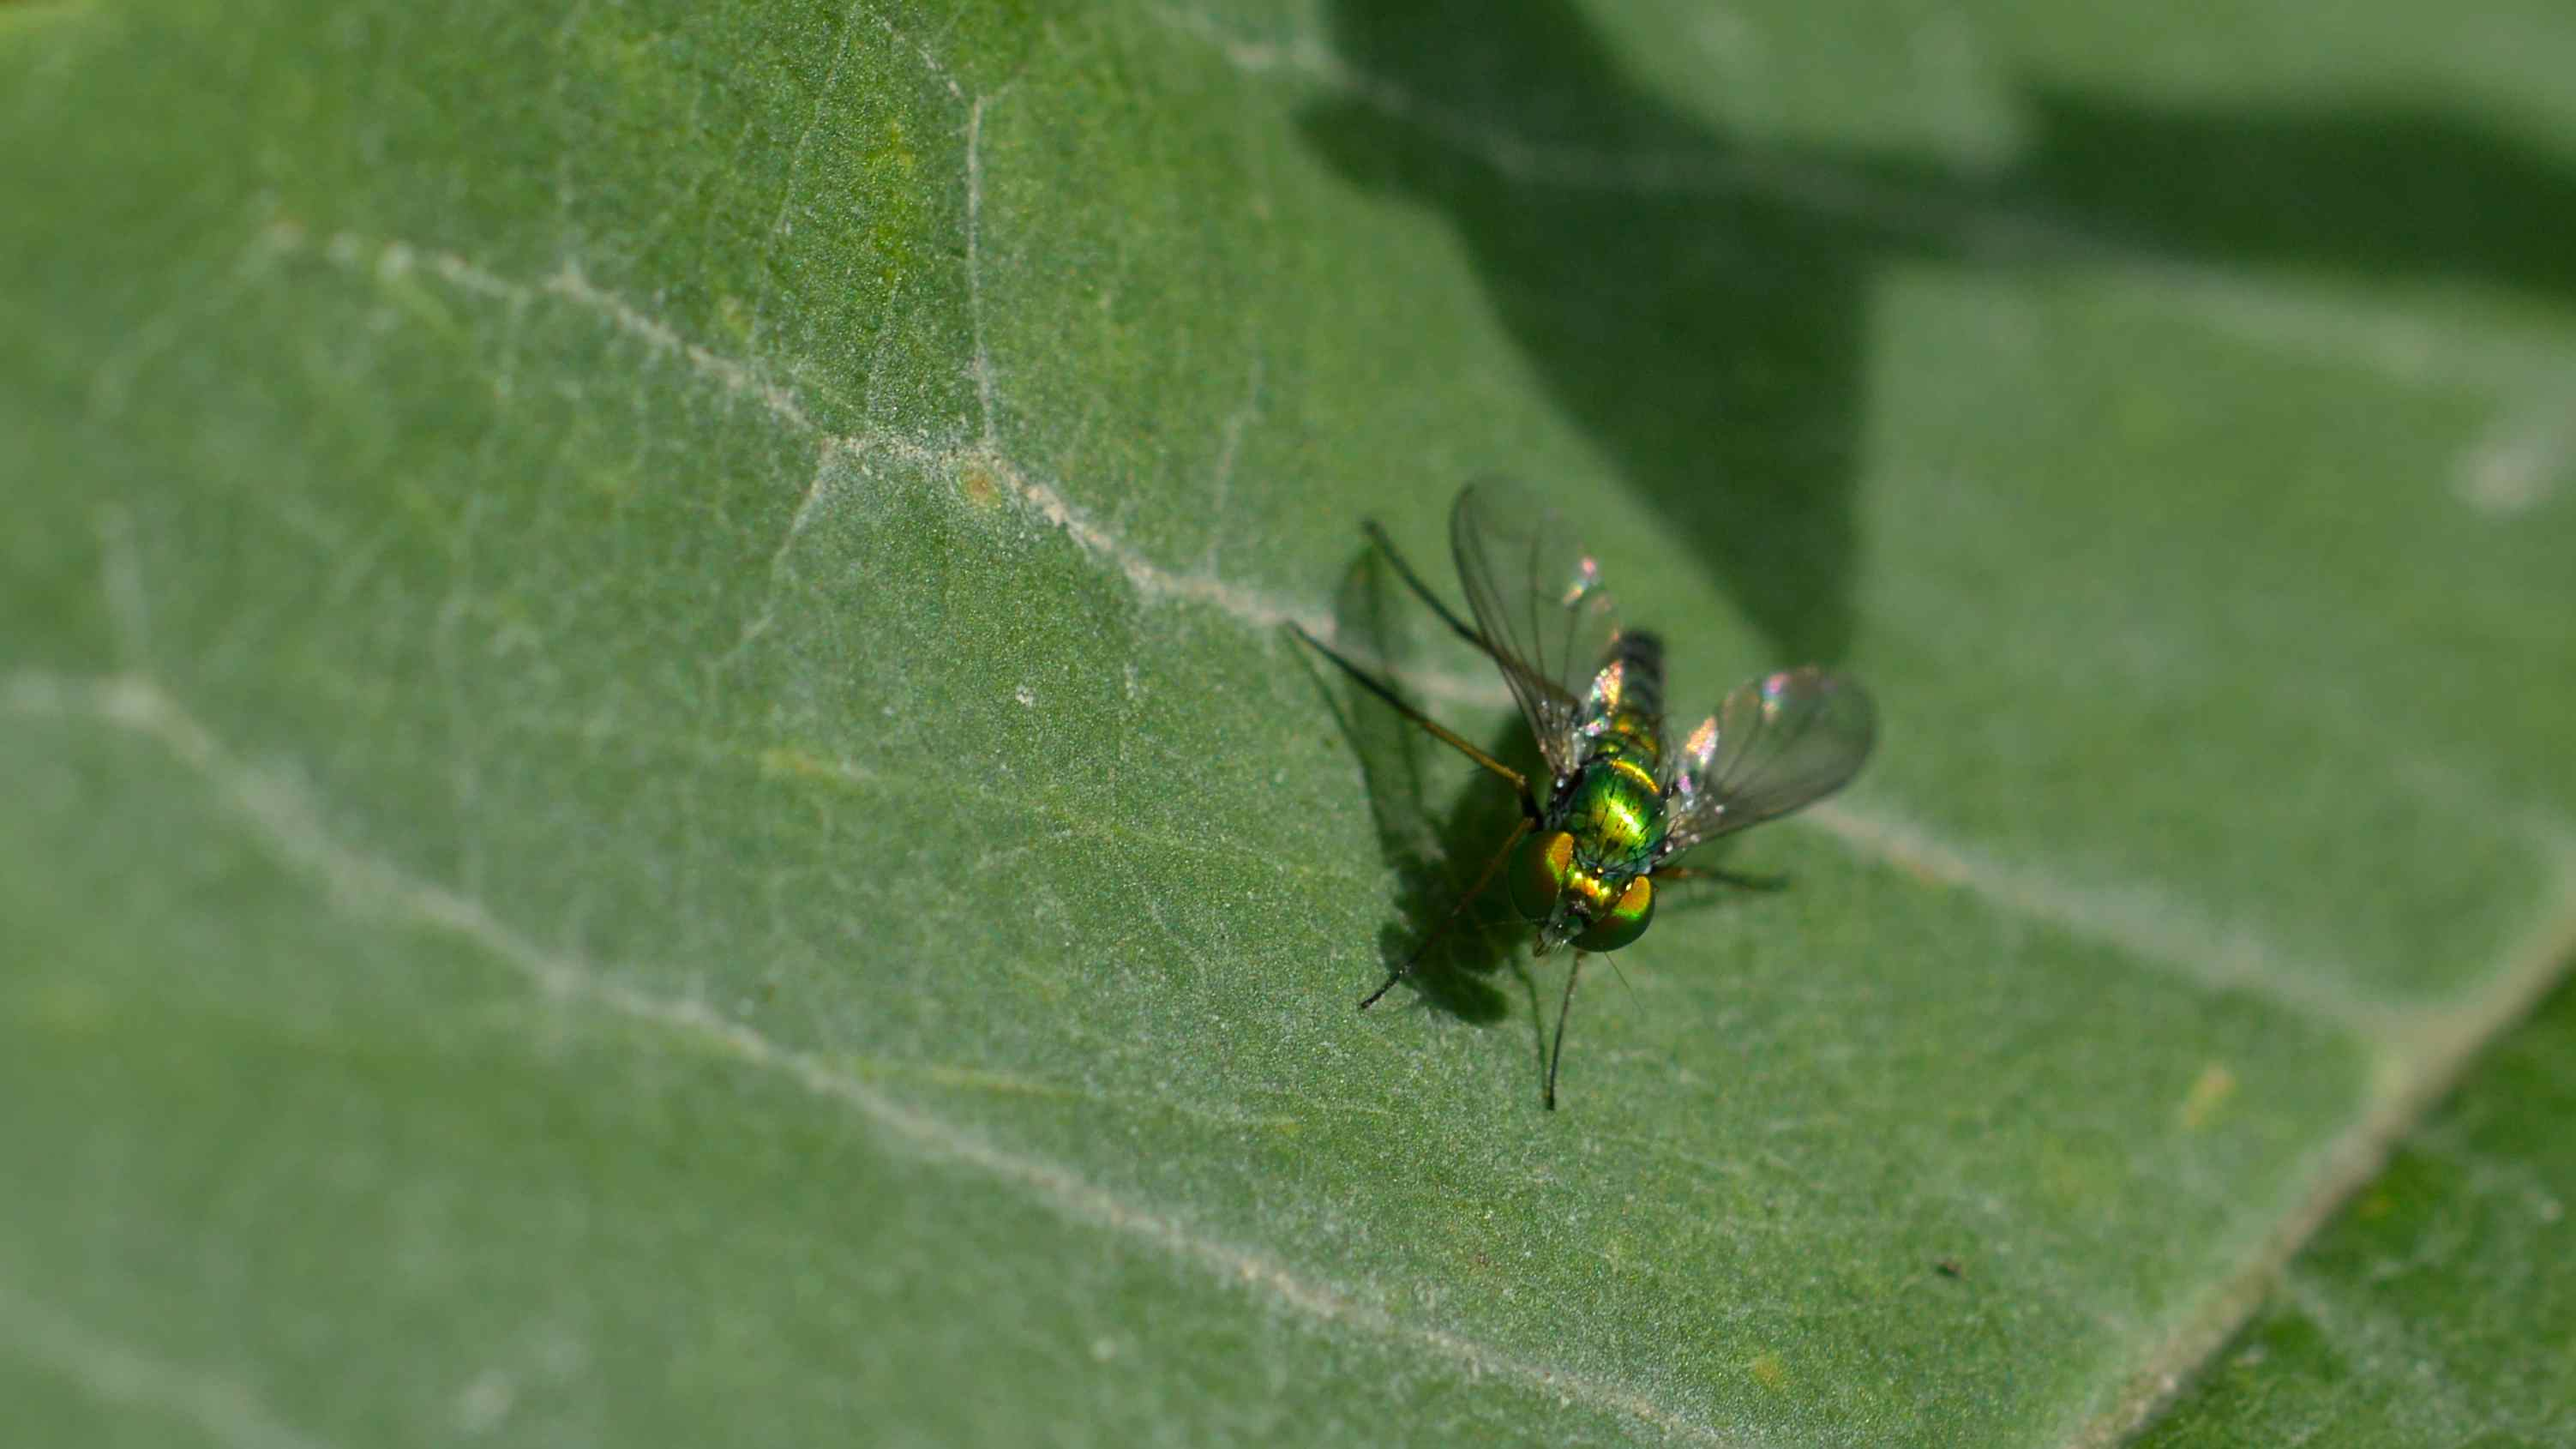 A fly of the Diptera order sitting on a leaf.